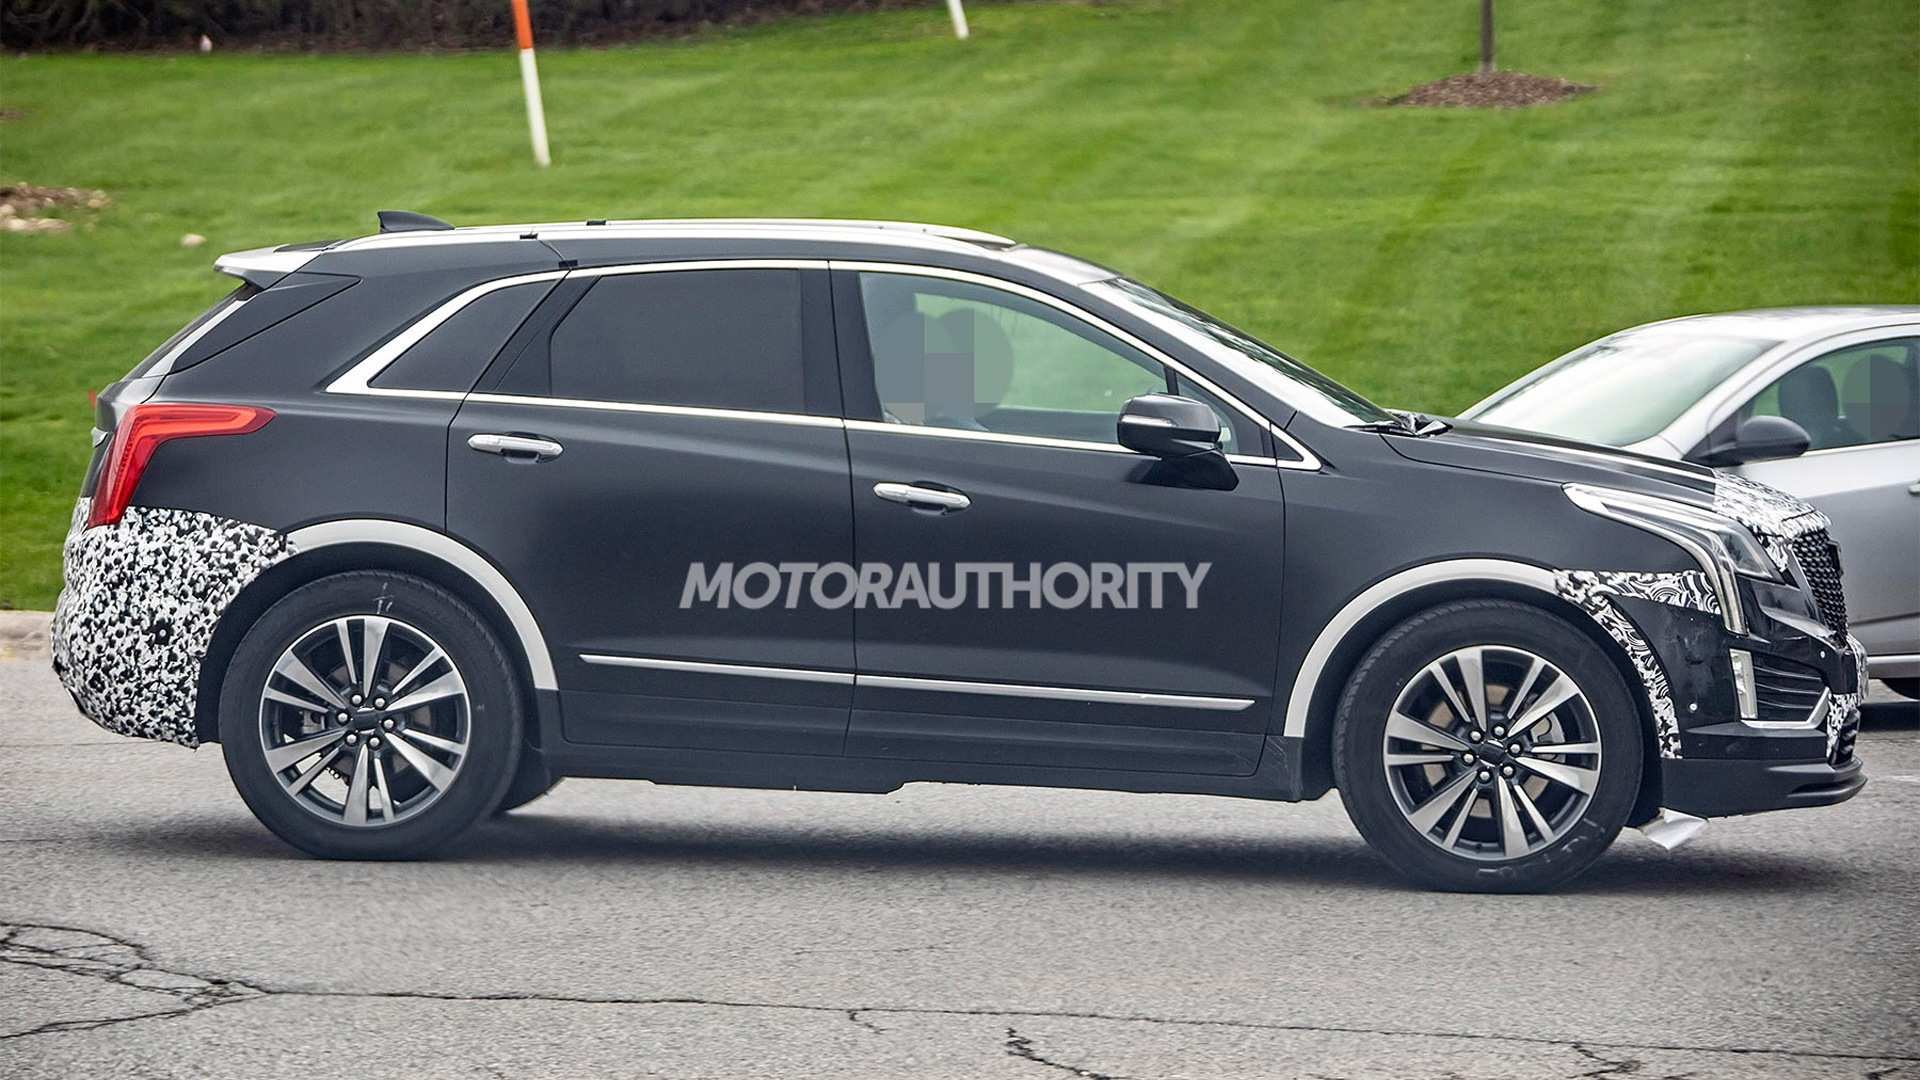 46 The Spy Shots Cadillac Xt5 Review And Release Date